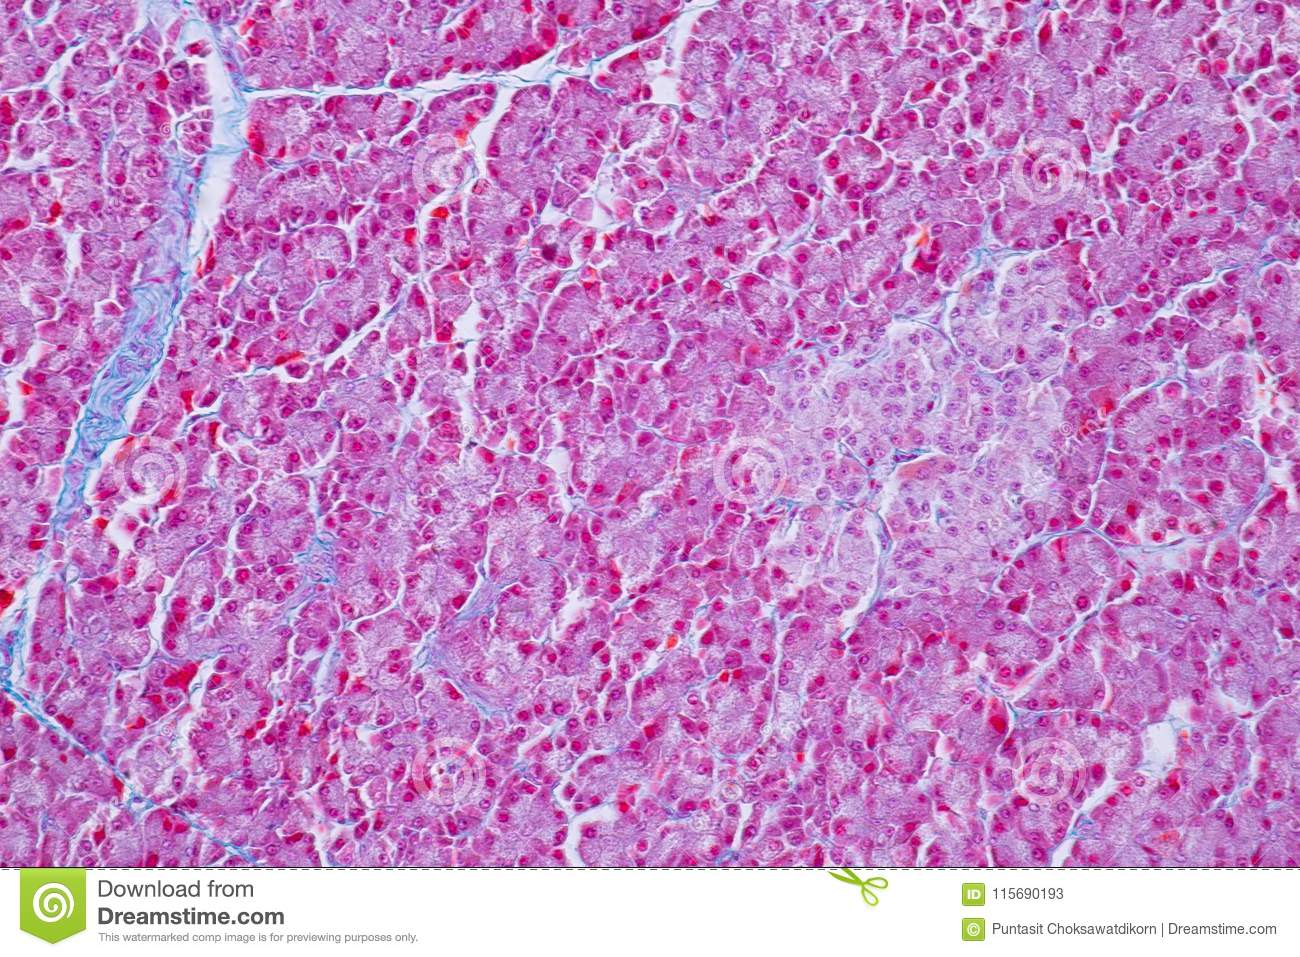 Human Liver Tissue Under Microscope View For Education Histology